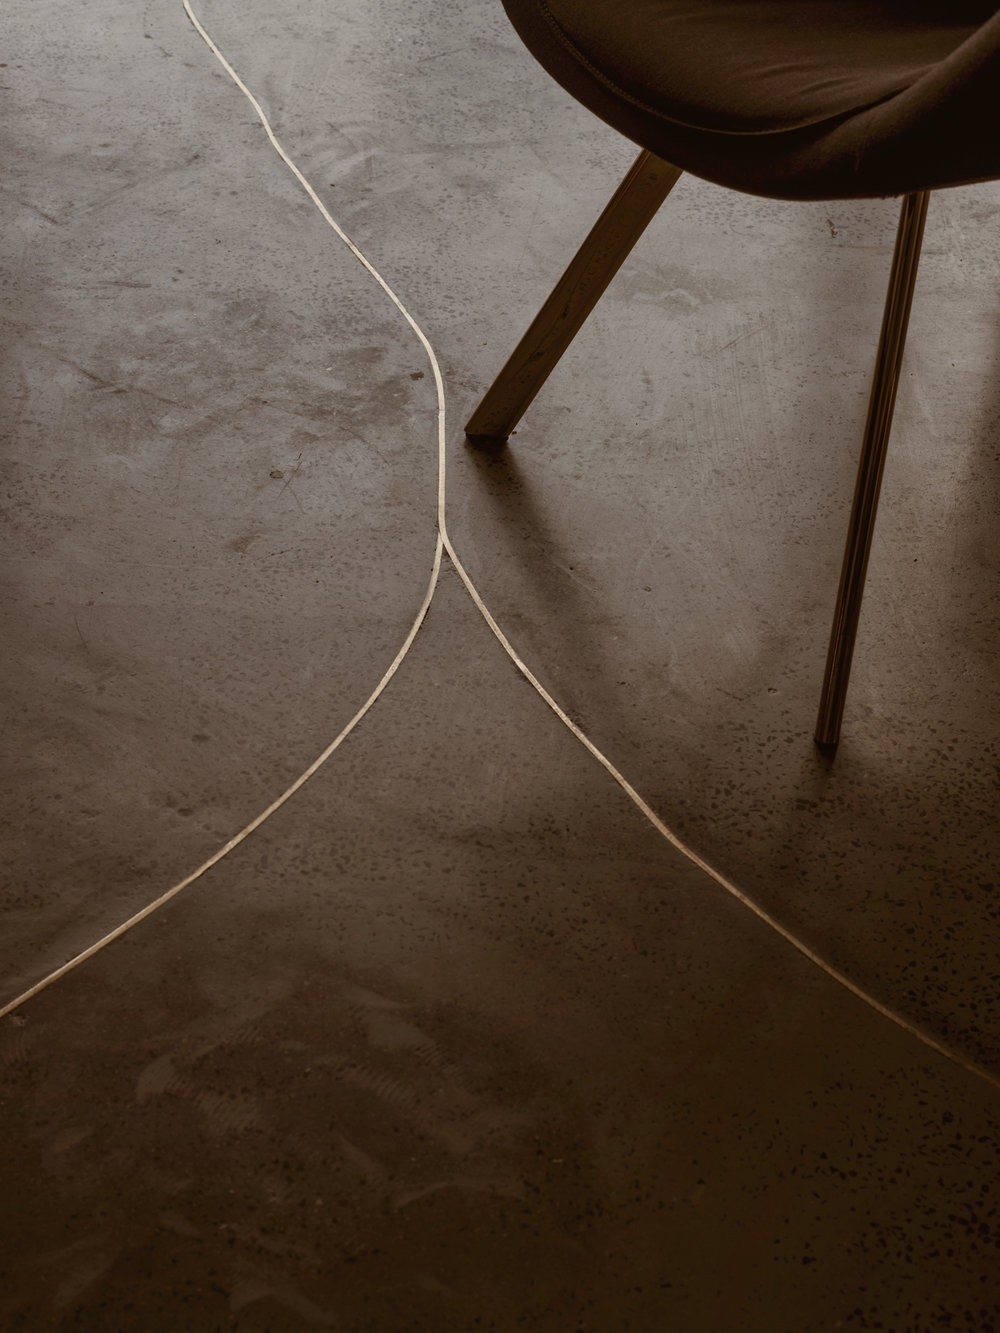 Cracks in the flooring are filled with brass inserts.